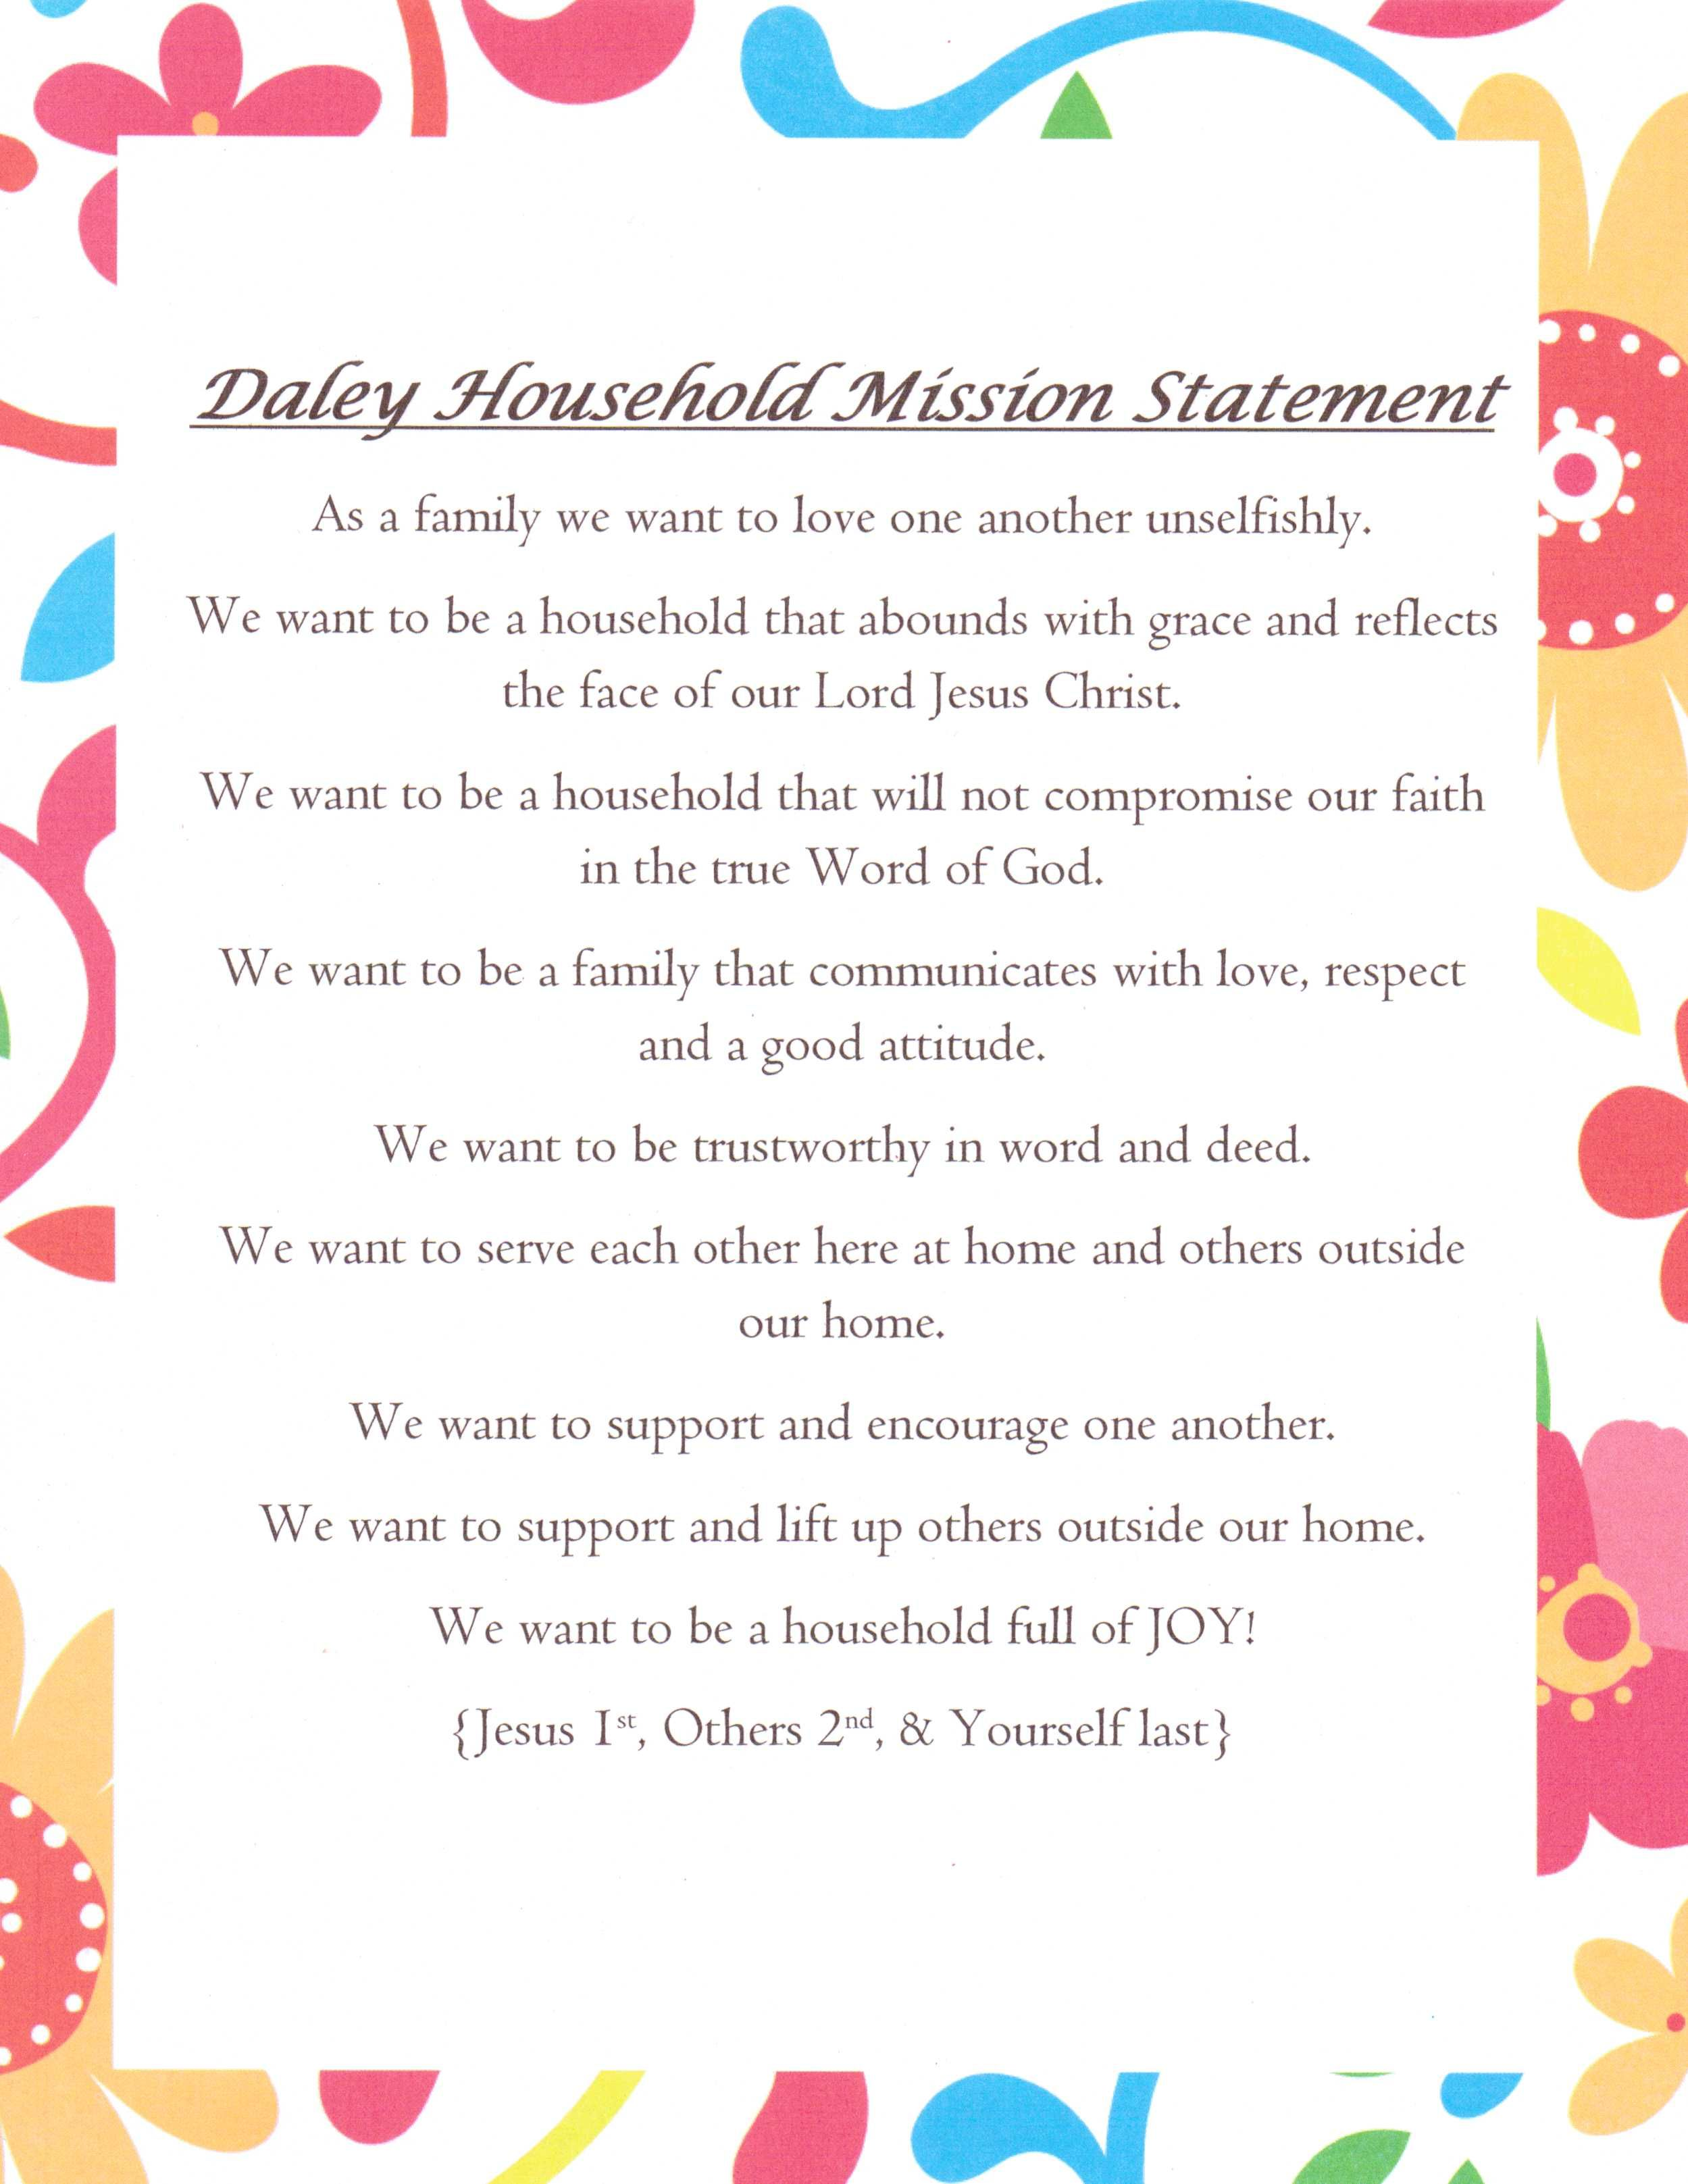 Personal commitment statement examples quotes - Our Family Mission Statement